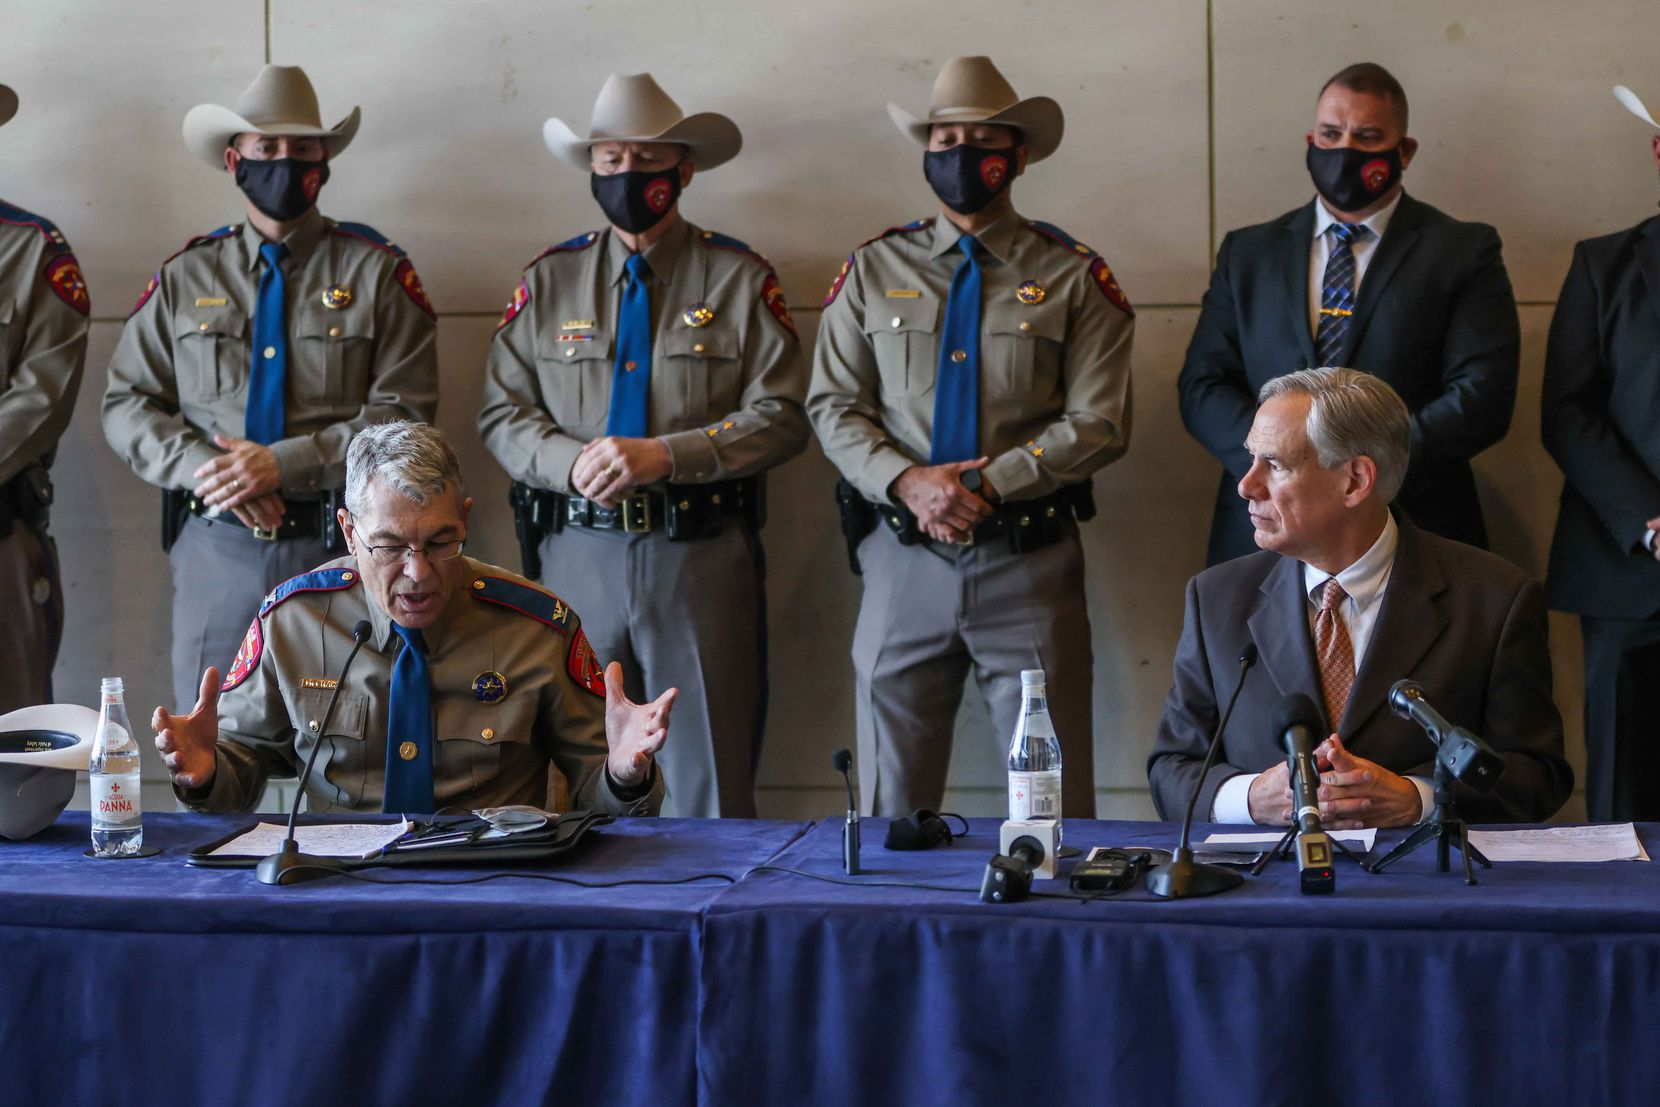 DPS chief Steve McGraw joined Gov. Greg Abbott during a news conference Wednesday in Dallas to address the arrival of immigrant teen boys from the border to the Kay Bailey Hutchison Convention Center. The convention center will serve as an emergency intake site to hold teens who have arrived at the U.S.-Mexico border starting Wednesday.